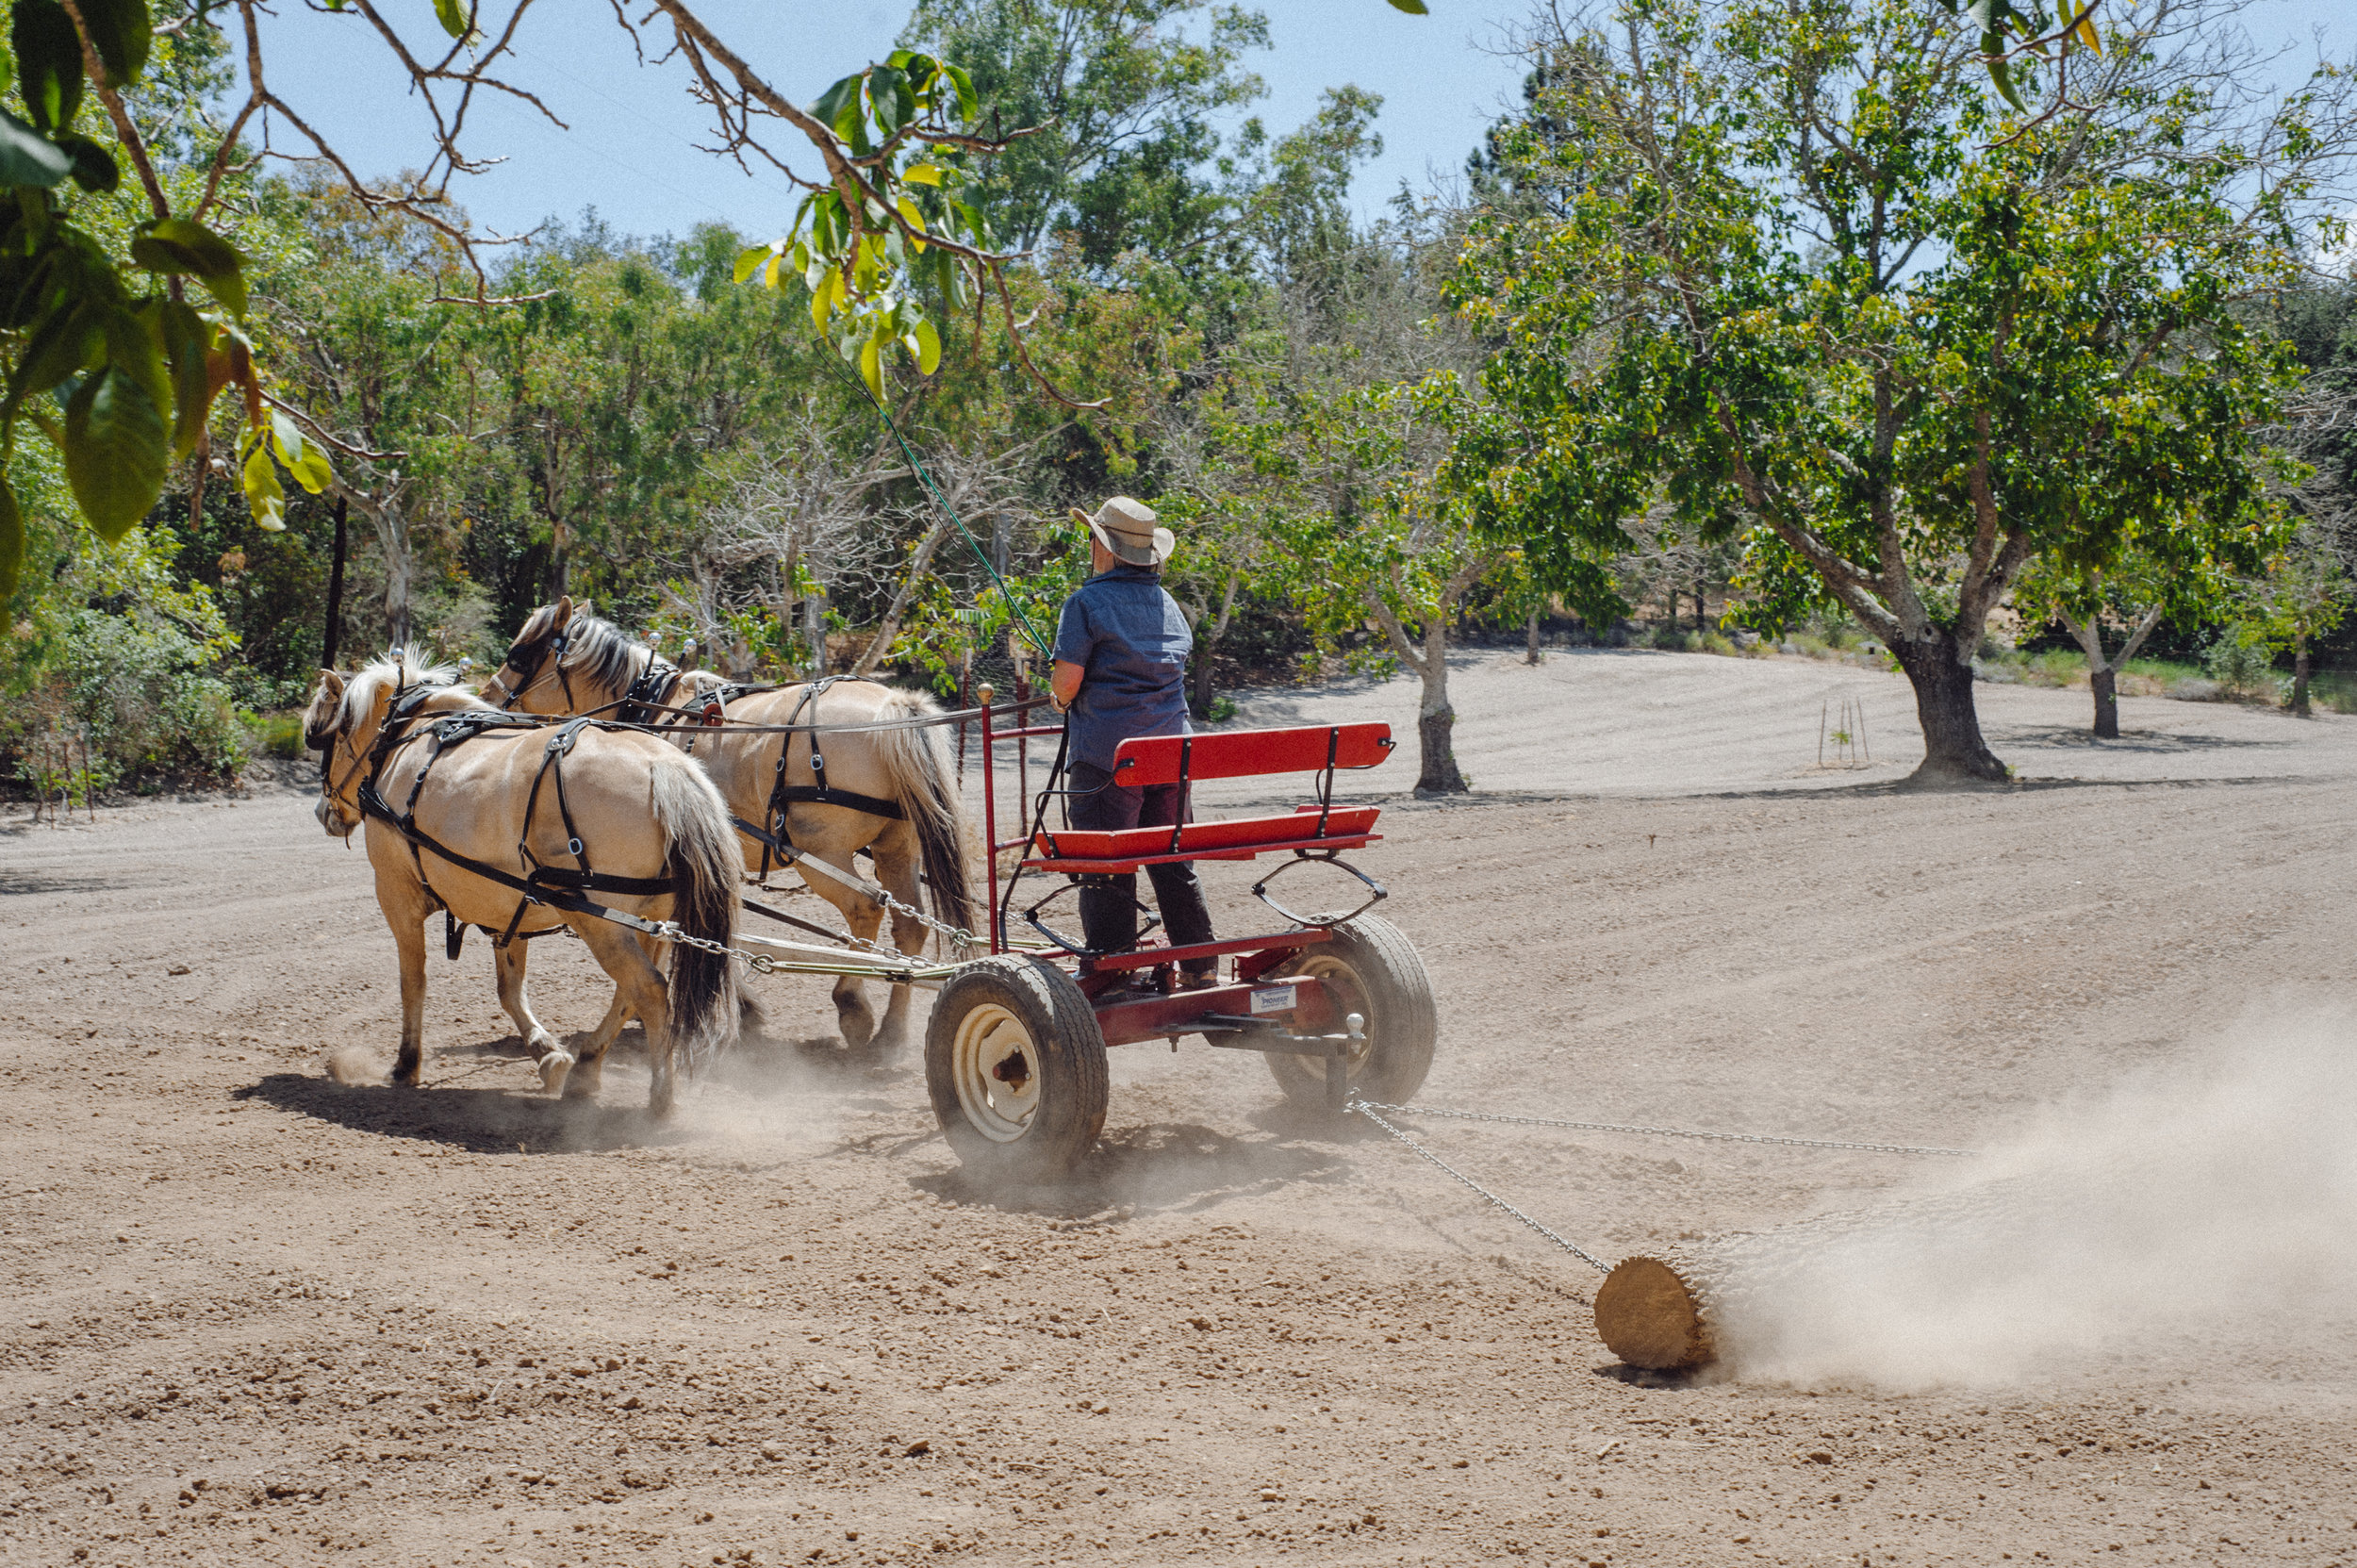 Lily and Sunny working the orchard ground. Smoothing out dirt clods will help during harvest when the walnuts fall. Photo courtesy of Manzanita Manor.